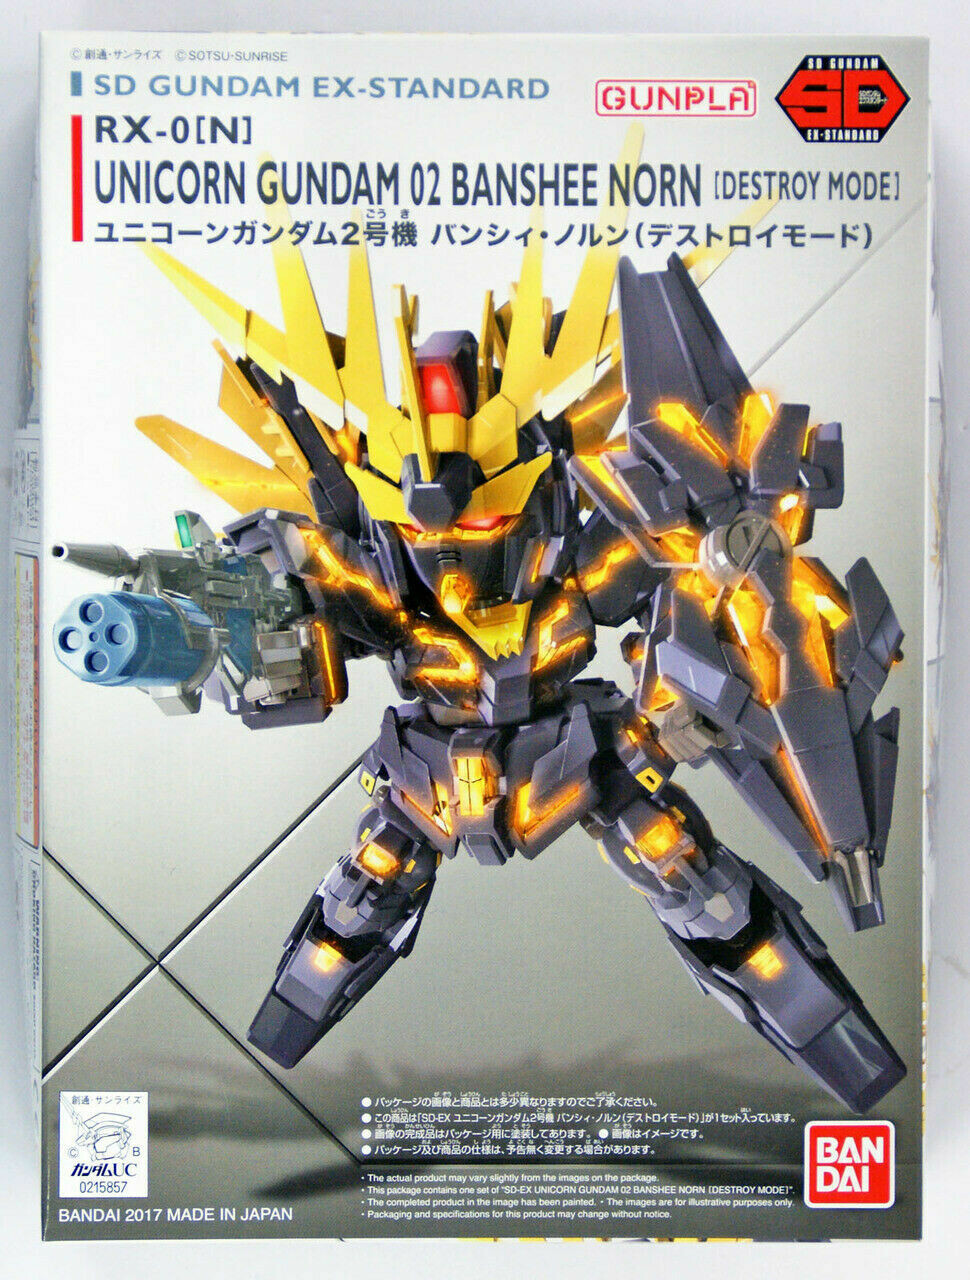 SDEX RX-0[N] Unicorn 02 Banshee Norn [Destroy Mode]